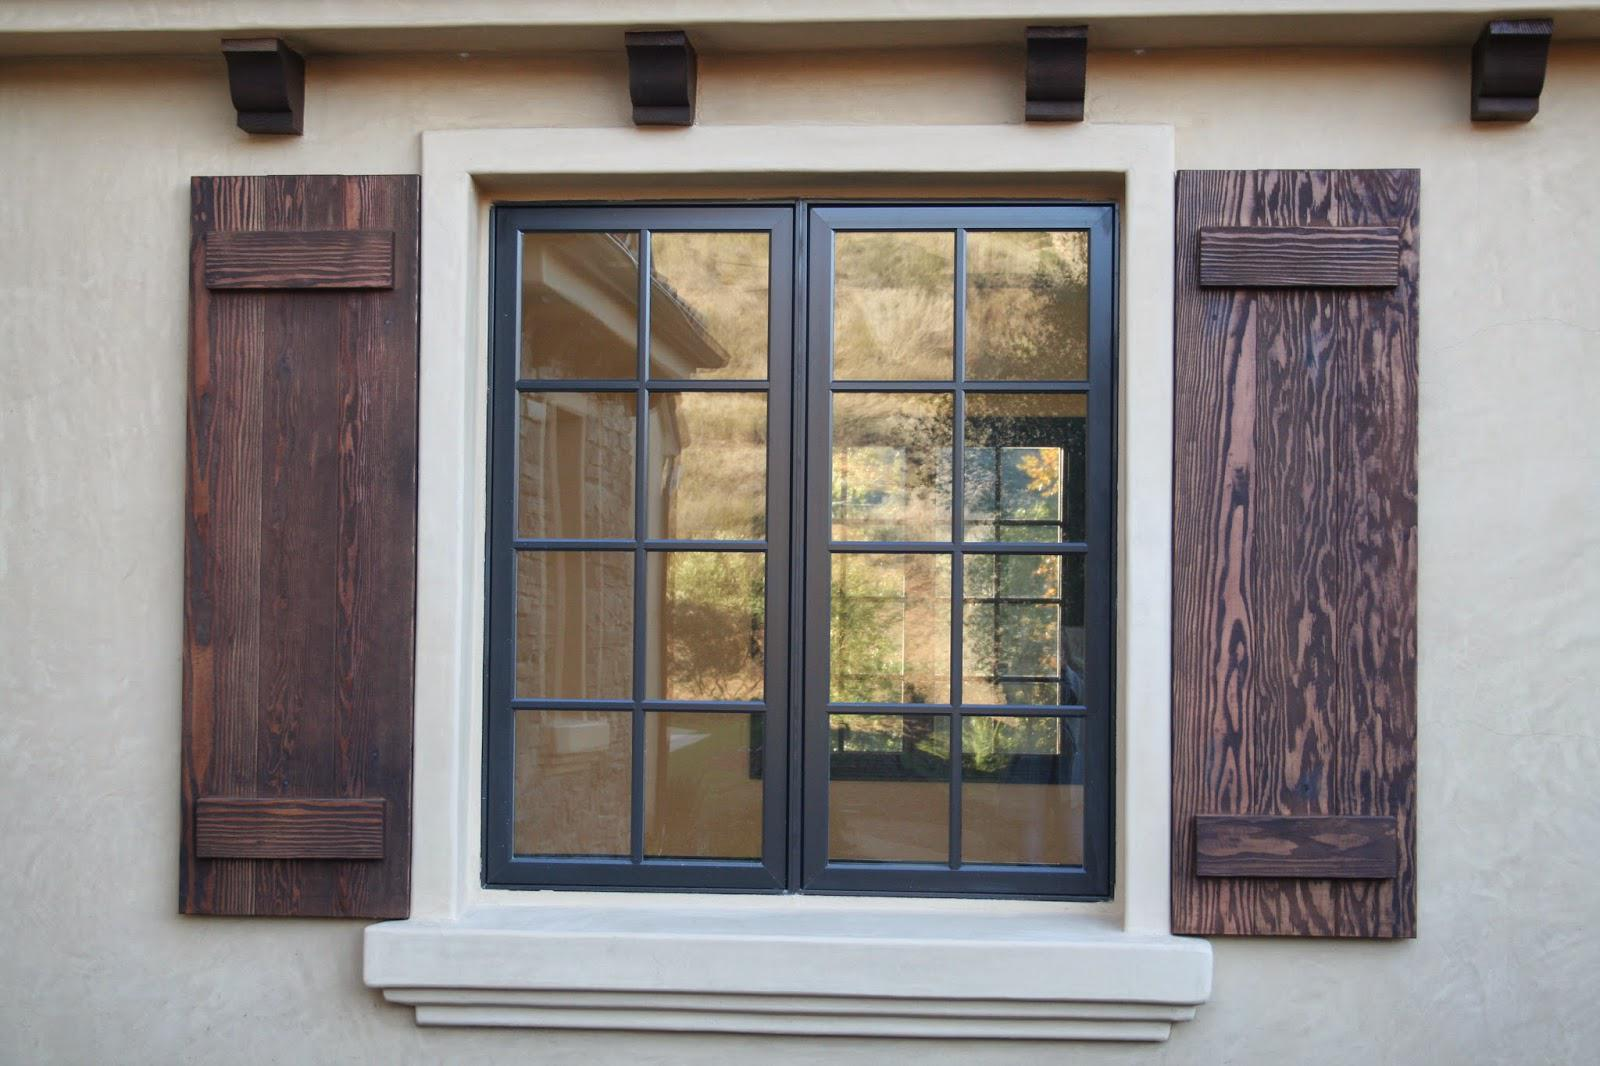 Wood Vs. MDF Window Stutters: Which One Should You Choose